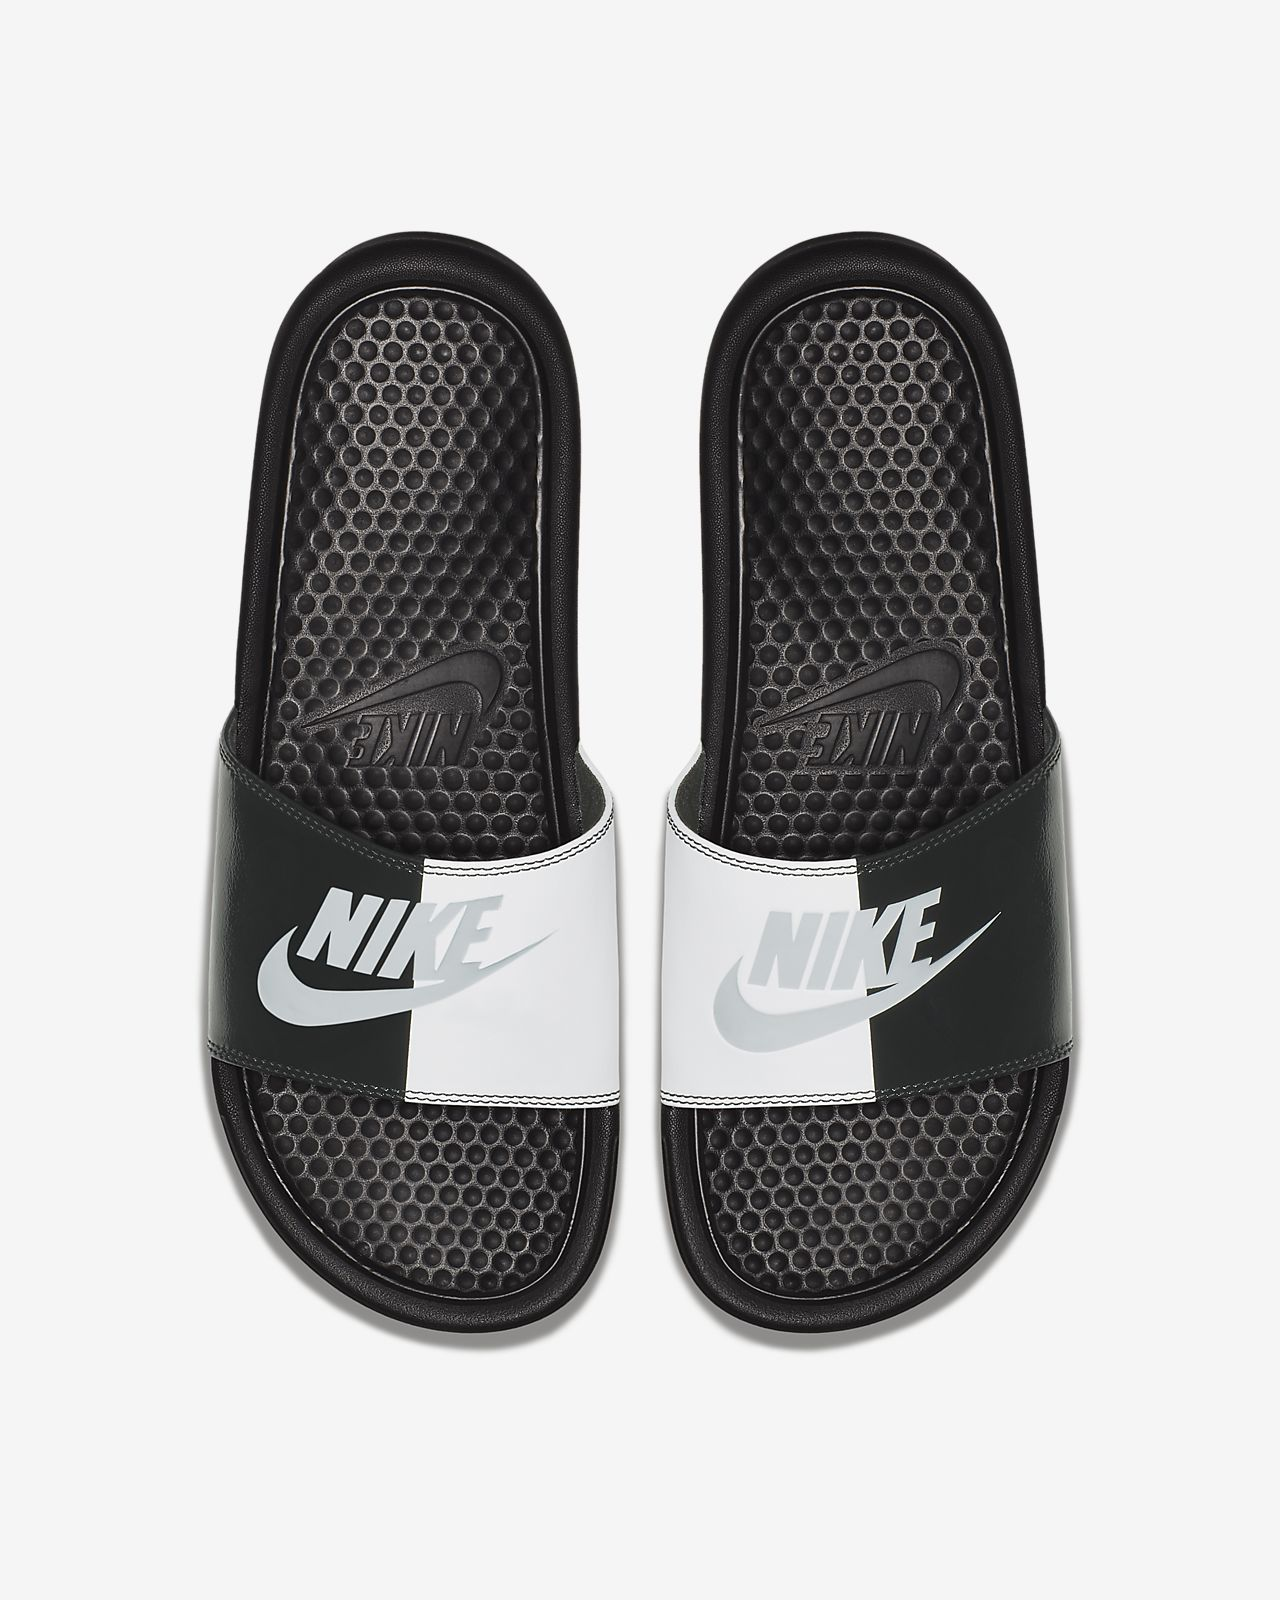 6ae4669ea267 Low Resolution Nike Benassi Slide Nike Benassi Slide